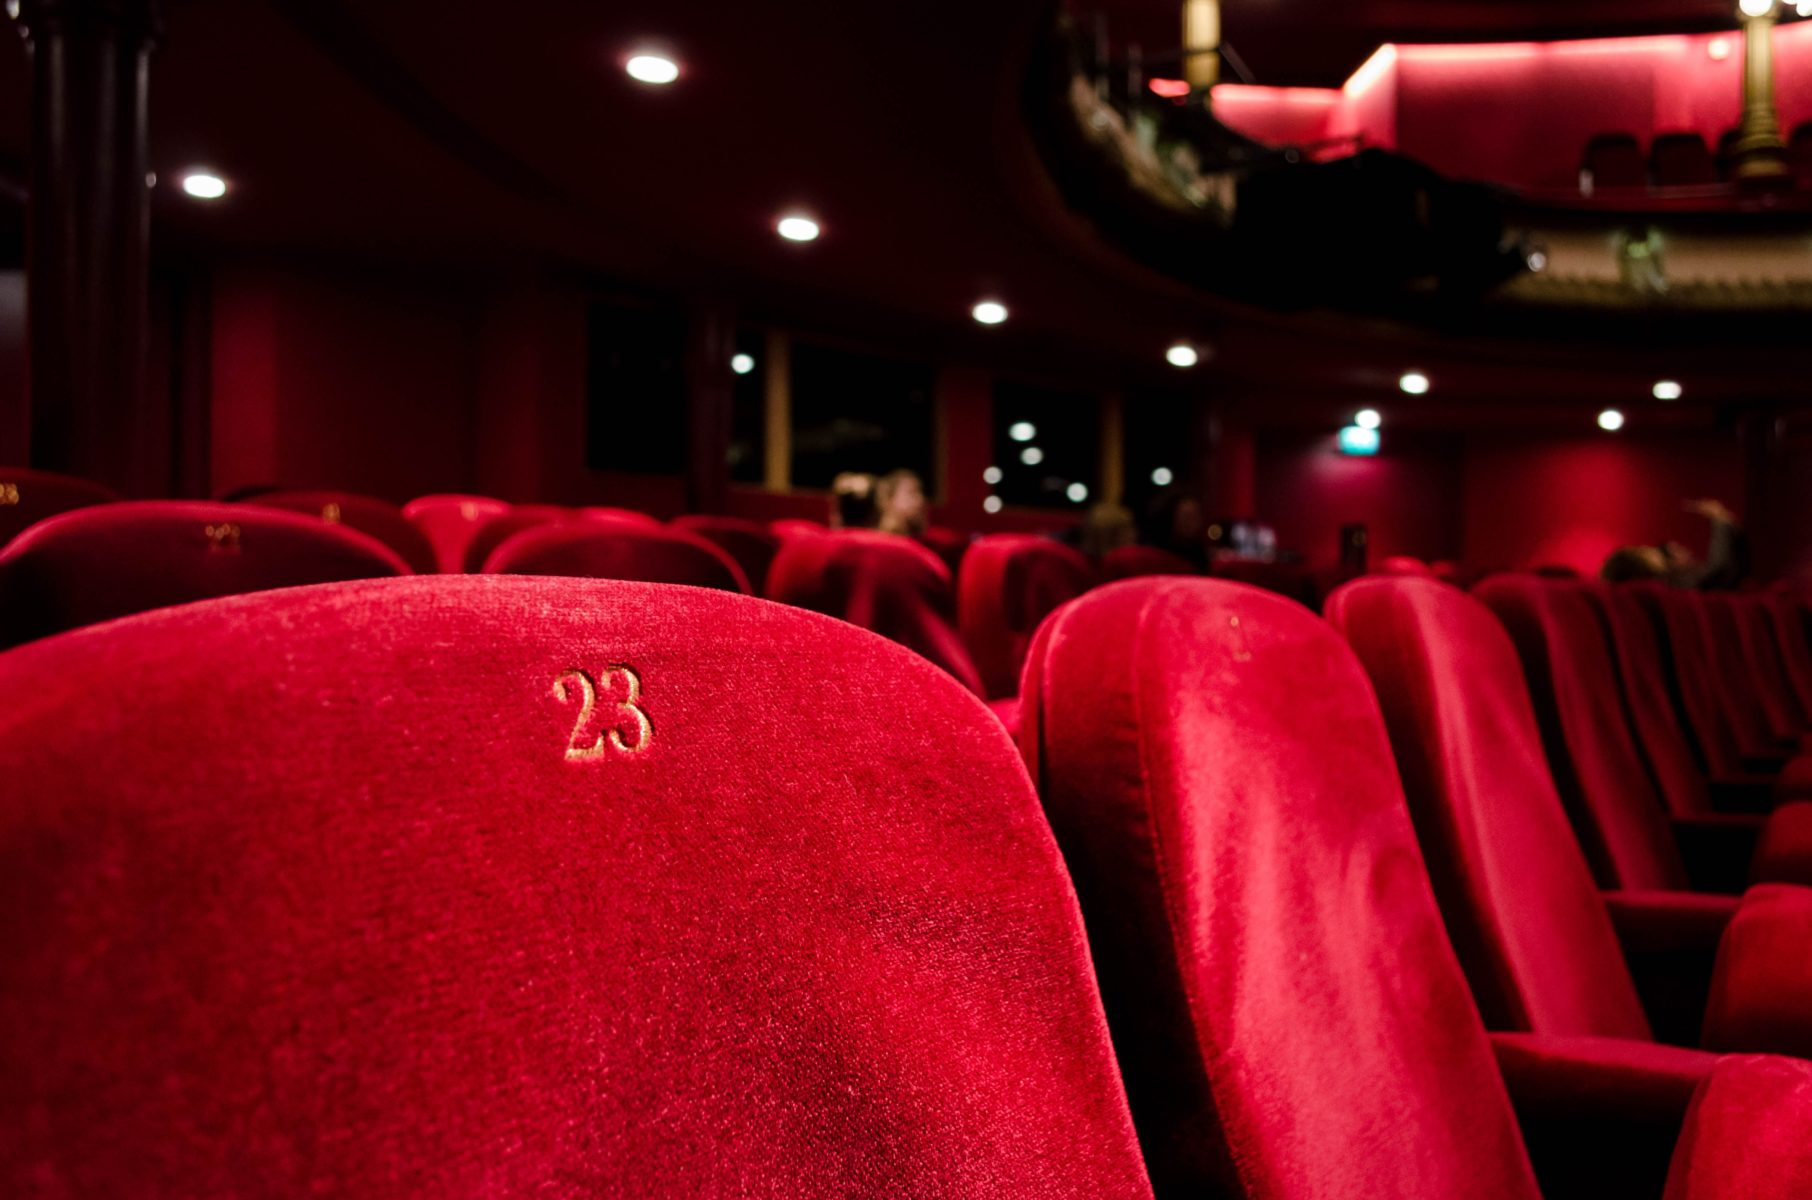 Theater Companies Adjust Business Models to Adapt to New Video-on-Demand Era